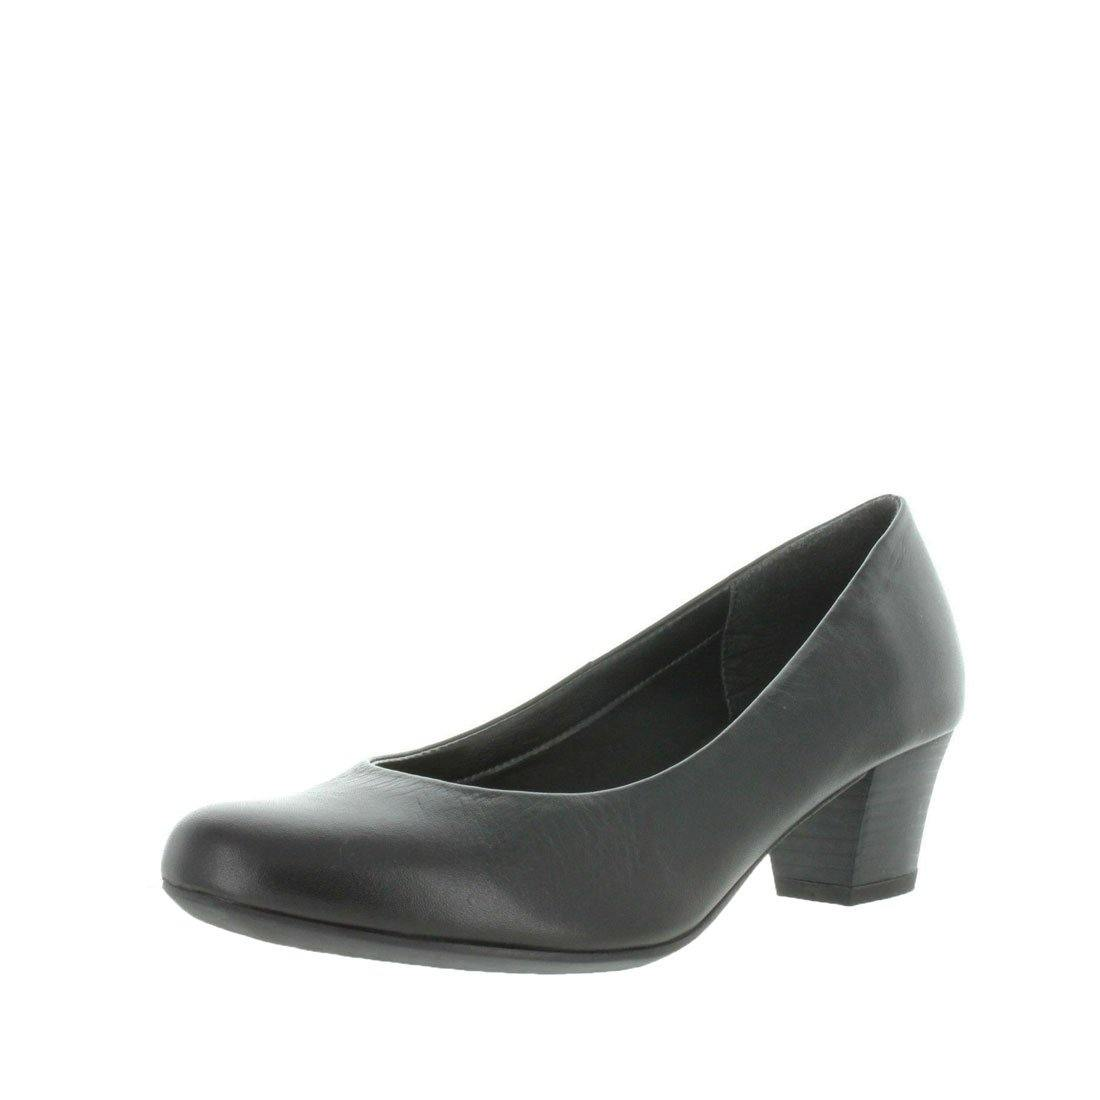 QUALITY by THE FLEXX - iShoes - Women's Shoes, Women's Shoes: Heels, Women's Shoes: Women's Work Shoes - FOOTWEAR-FOOTWEAR